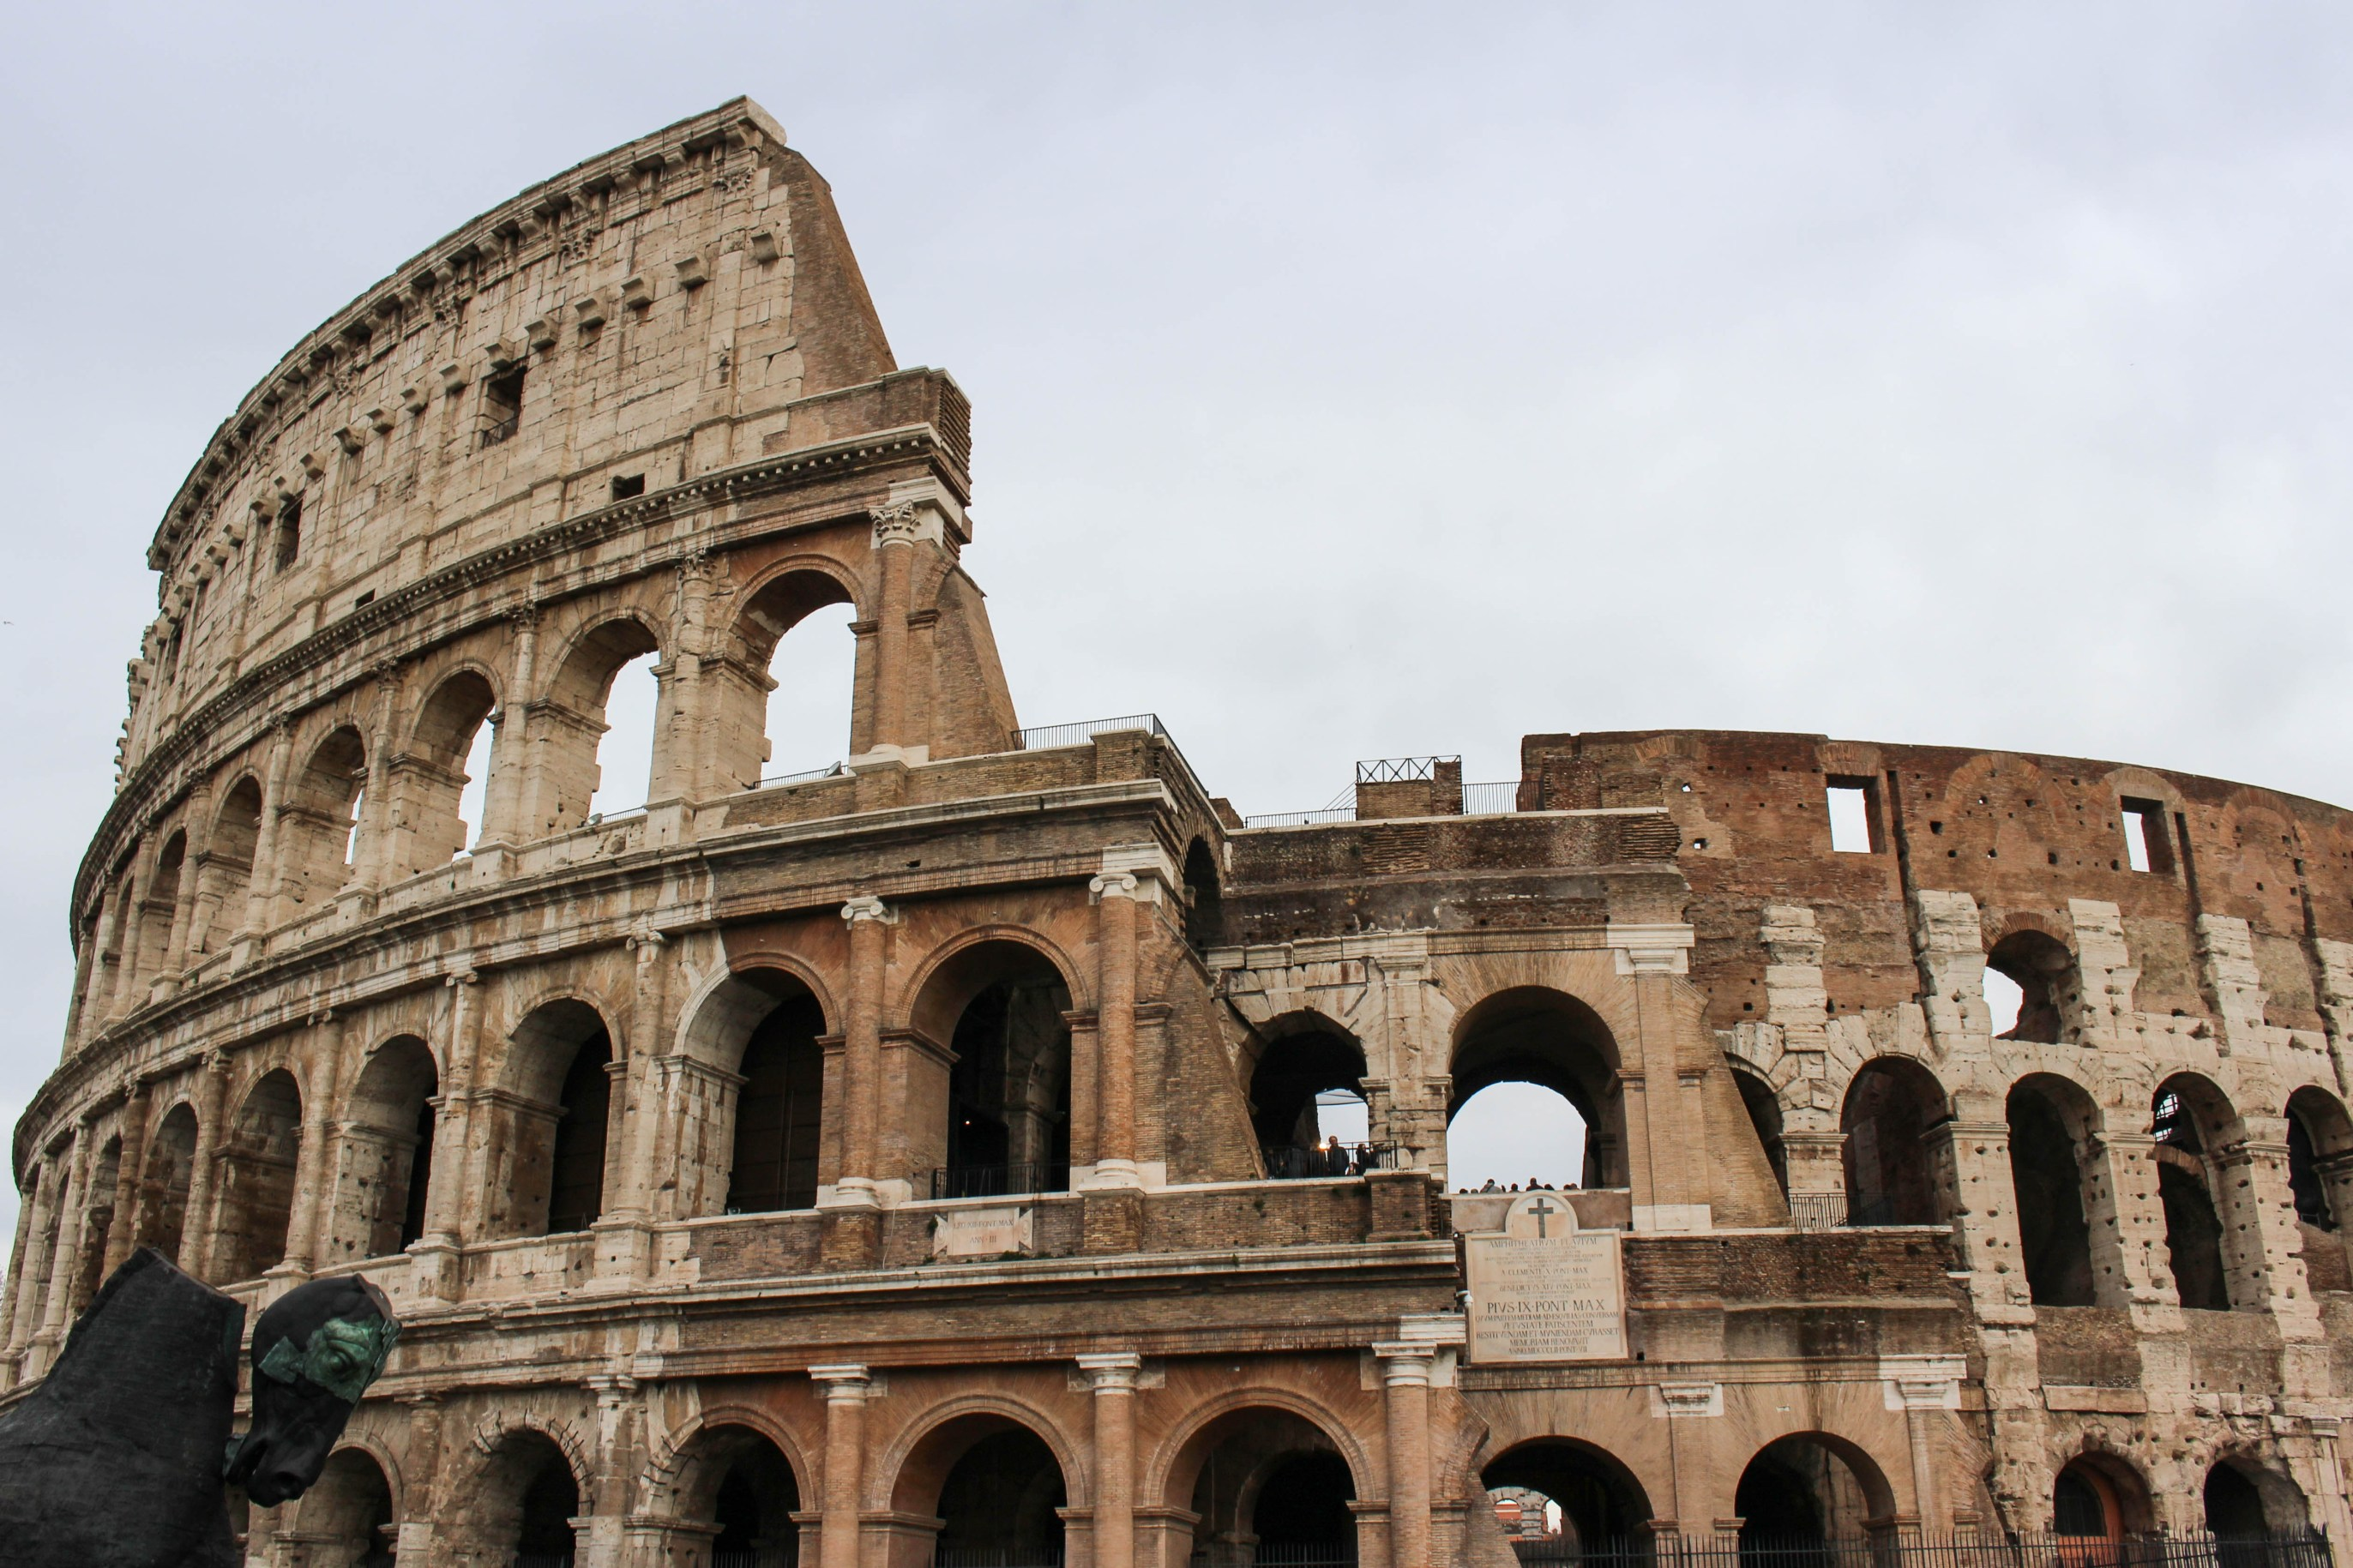 10 Things I Wish I Would've Known Before Visiting the Roman Colosseum in Rome, Italy